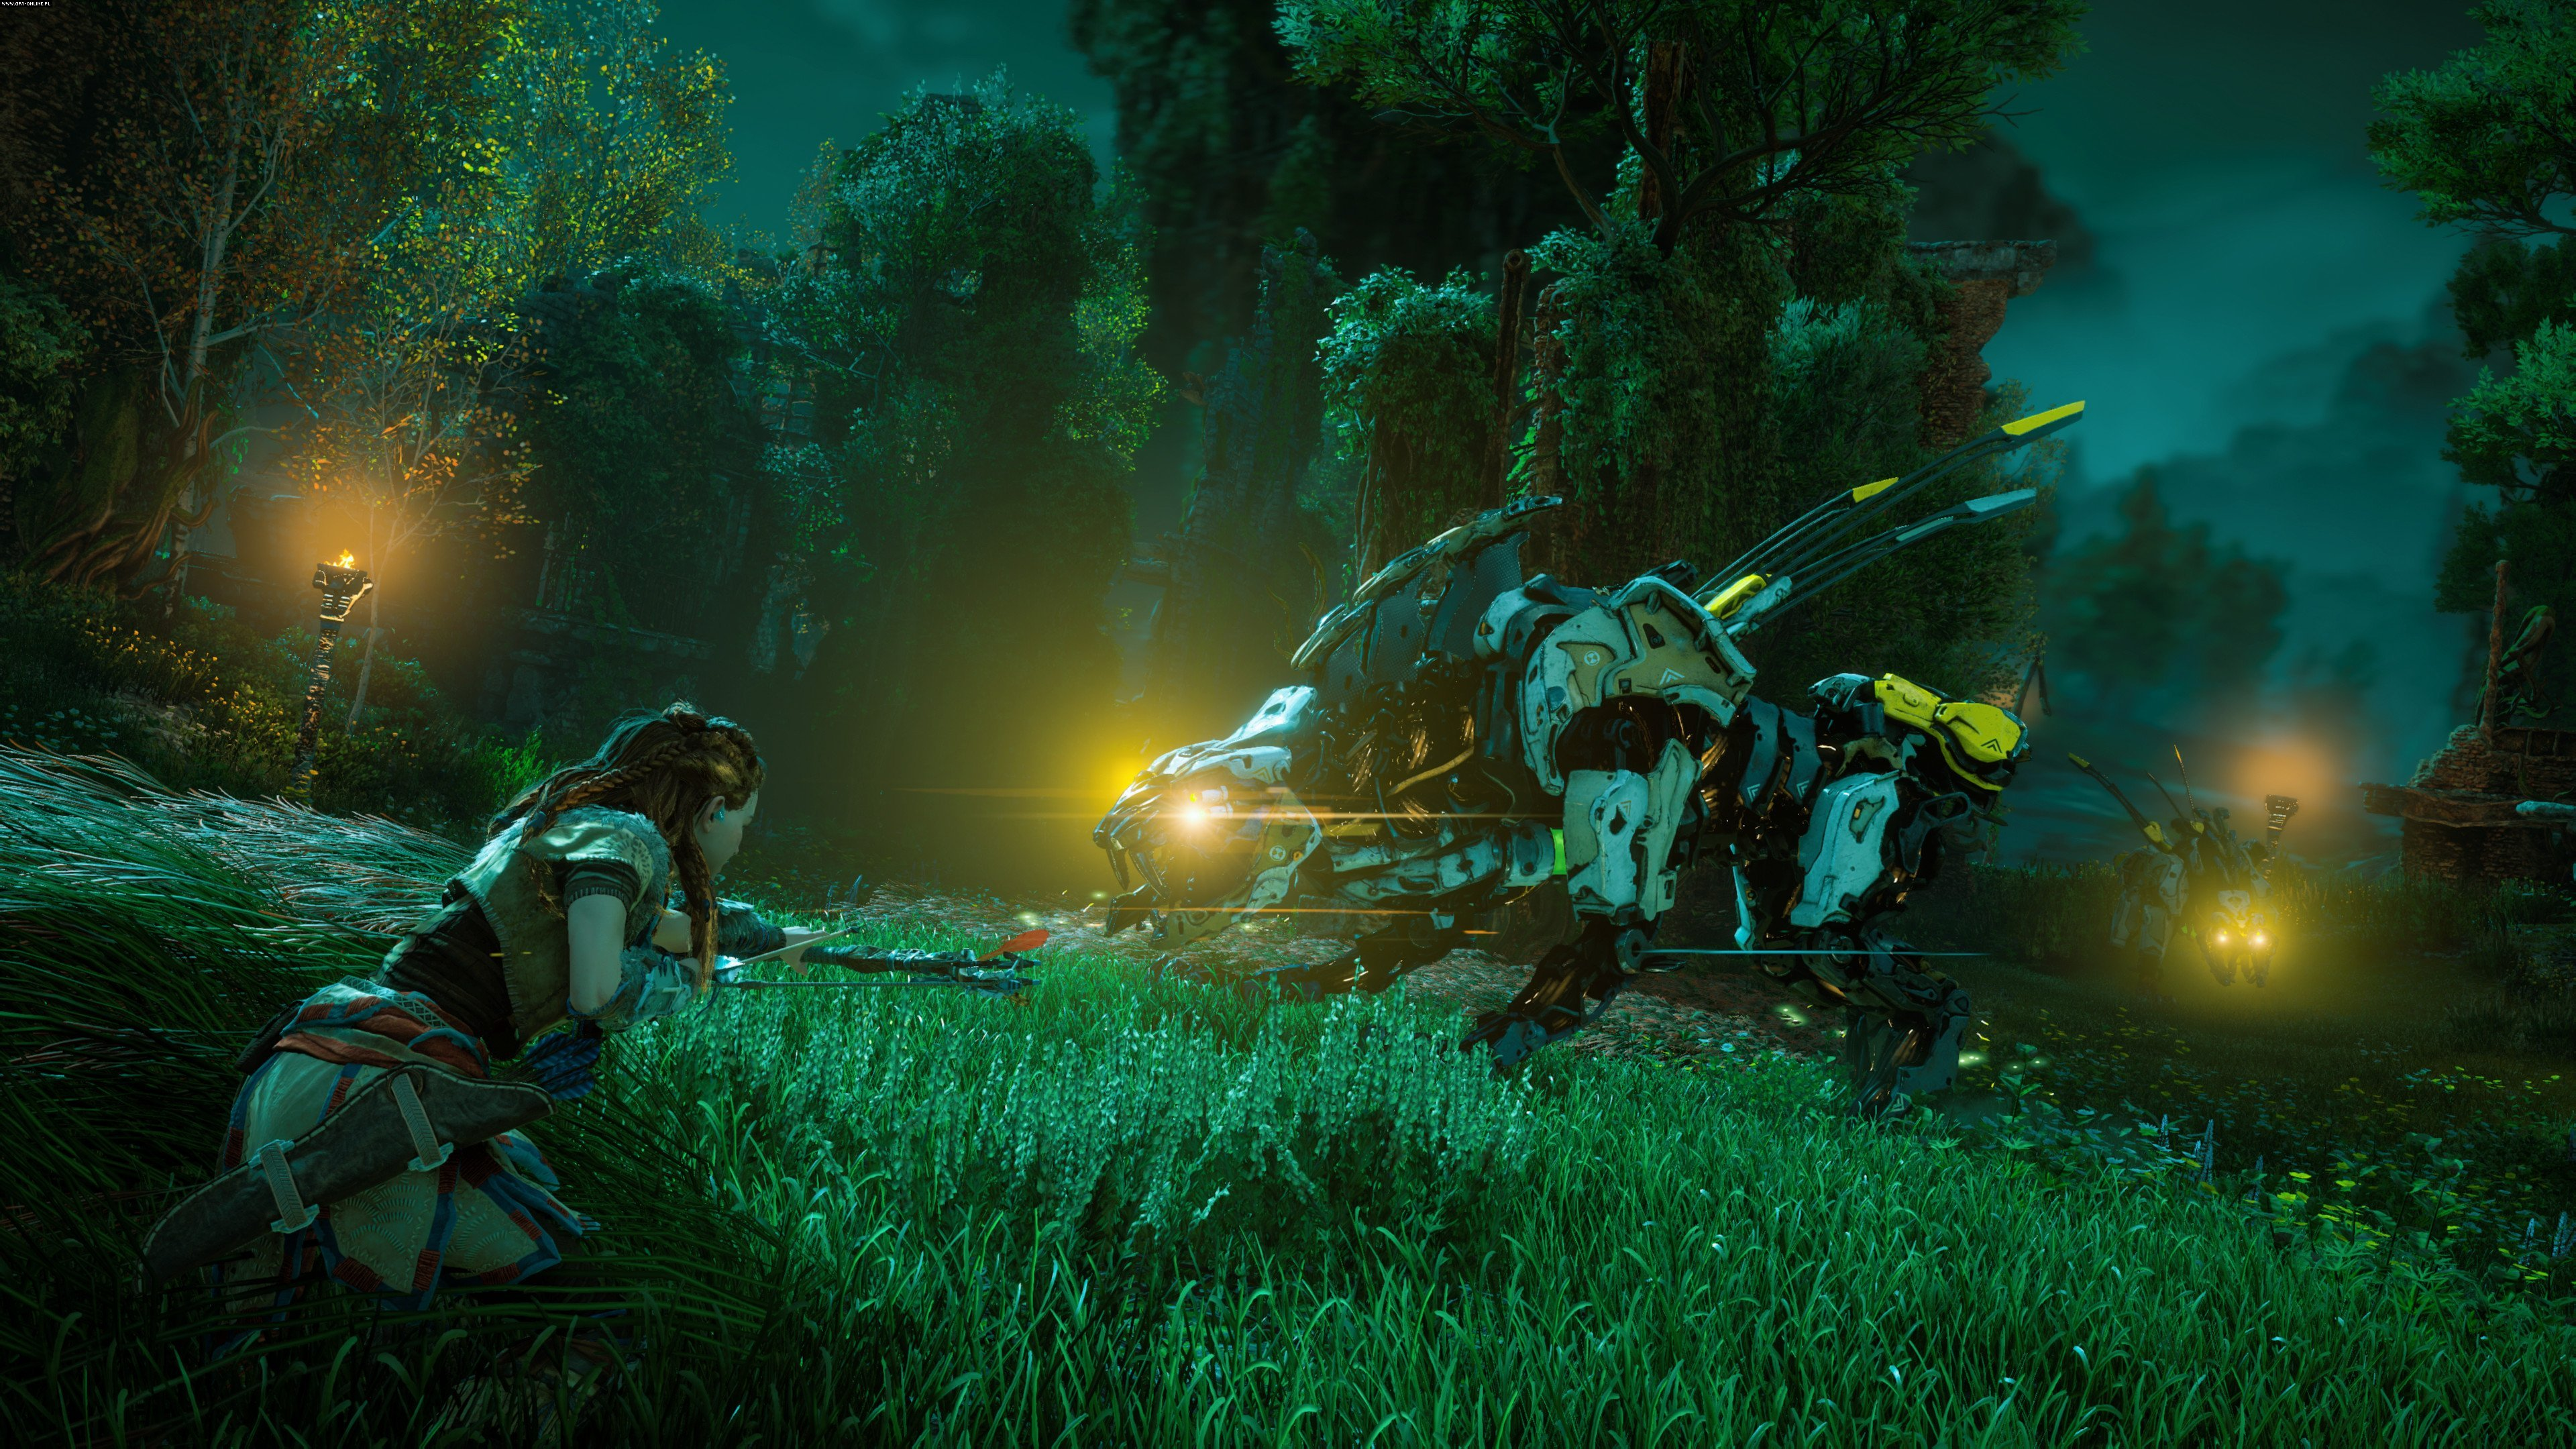 Horizon Zero Dawn PS4 Games Image 81/131, Guerrilla Games, Sony Interactive Entertainment